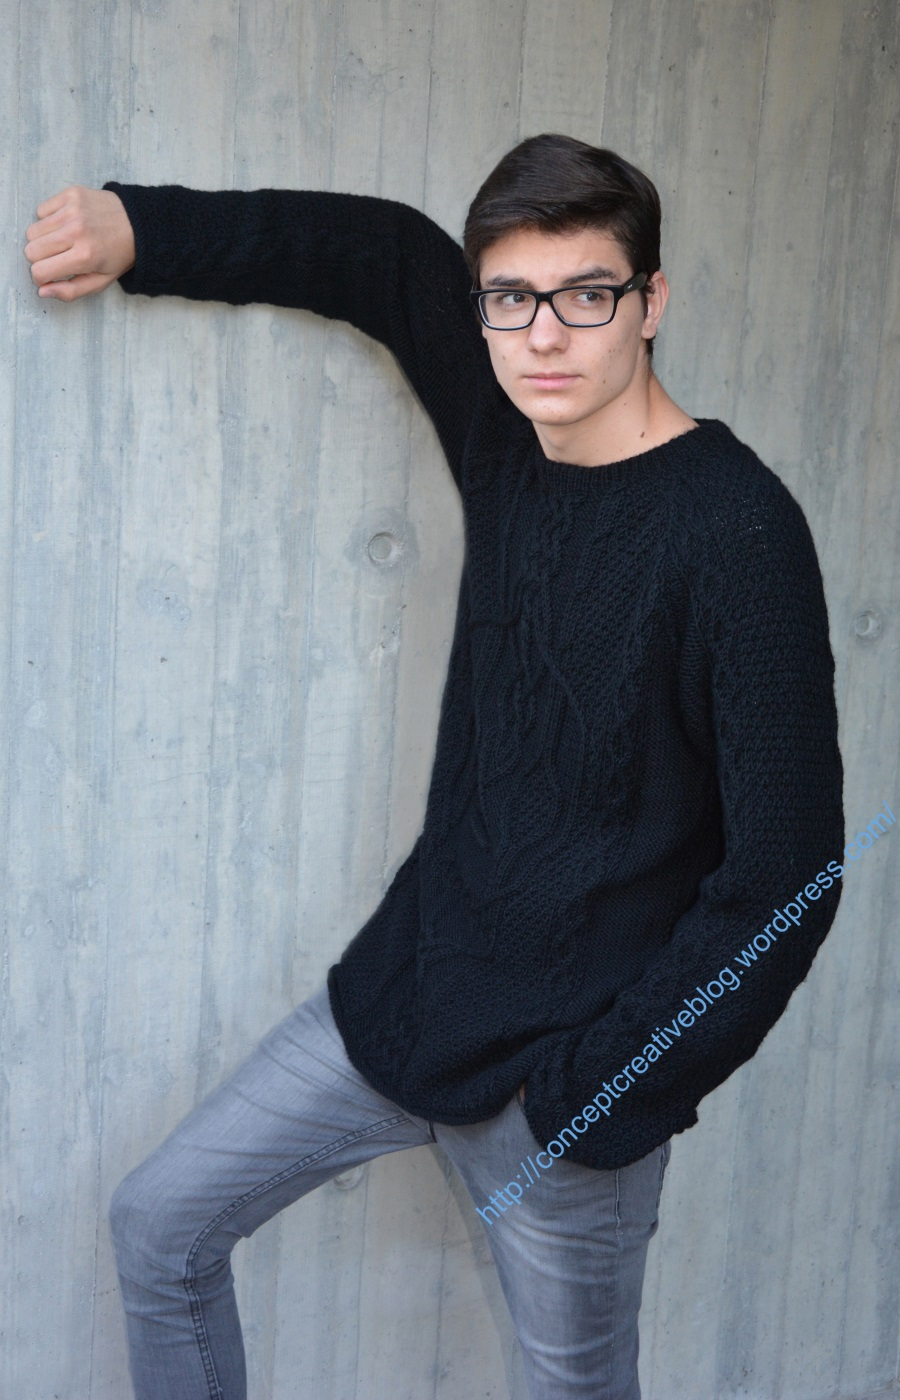 Knit Cable Pullover With Skull Pattern Free Diagram